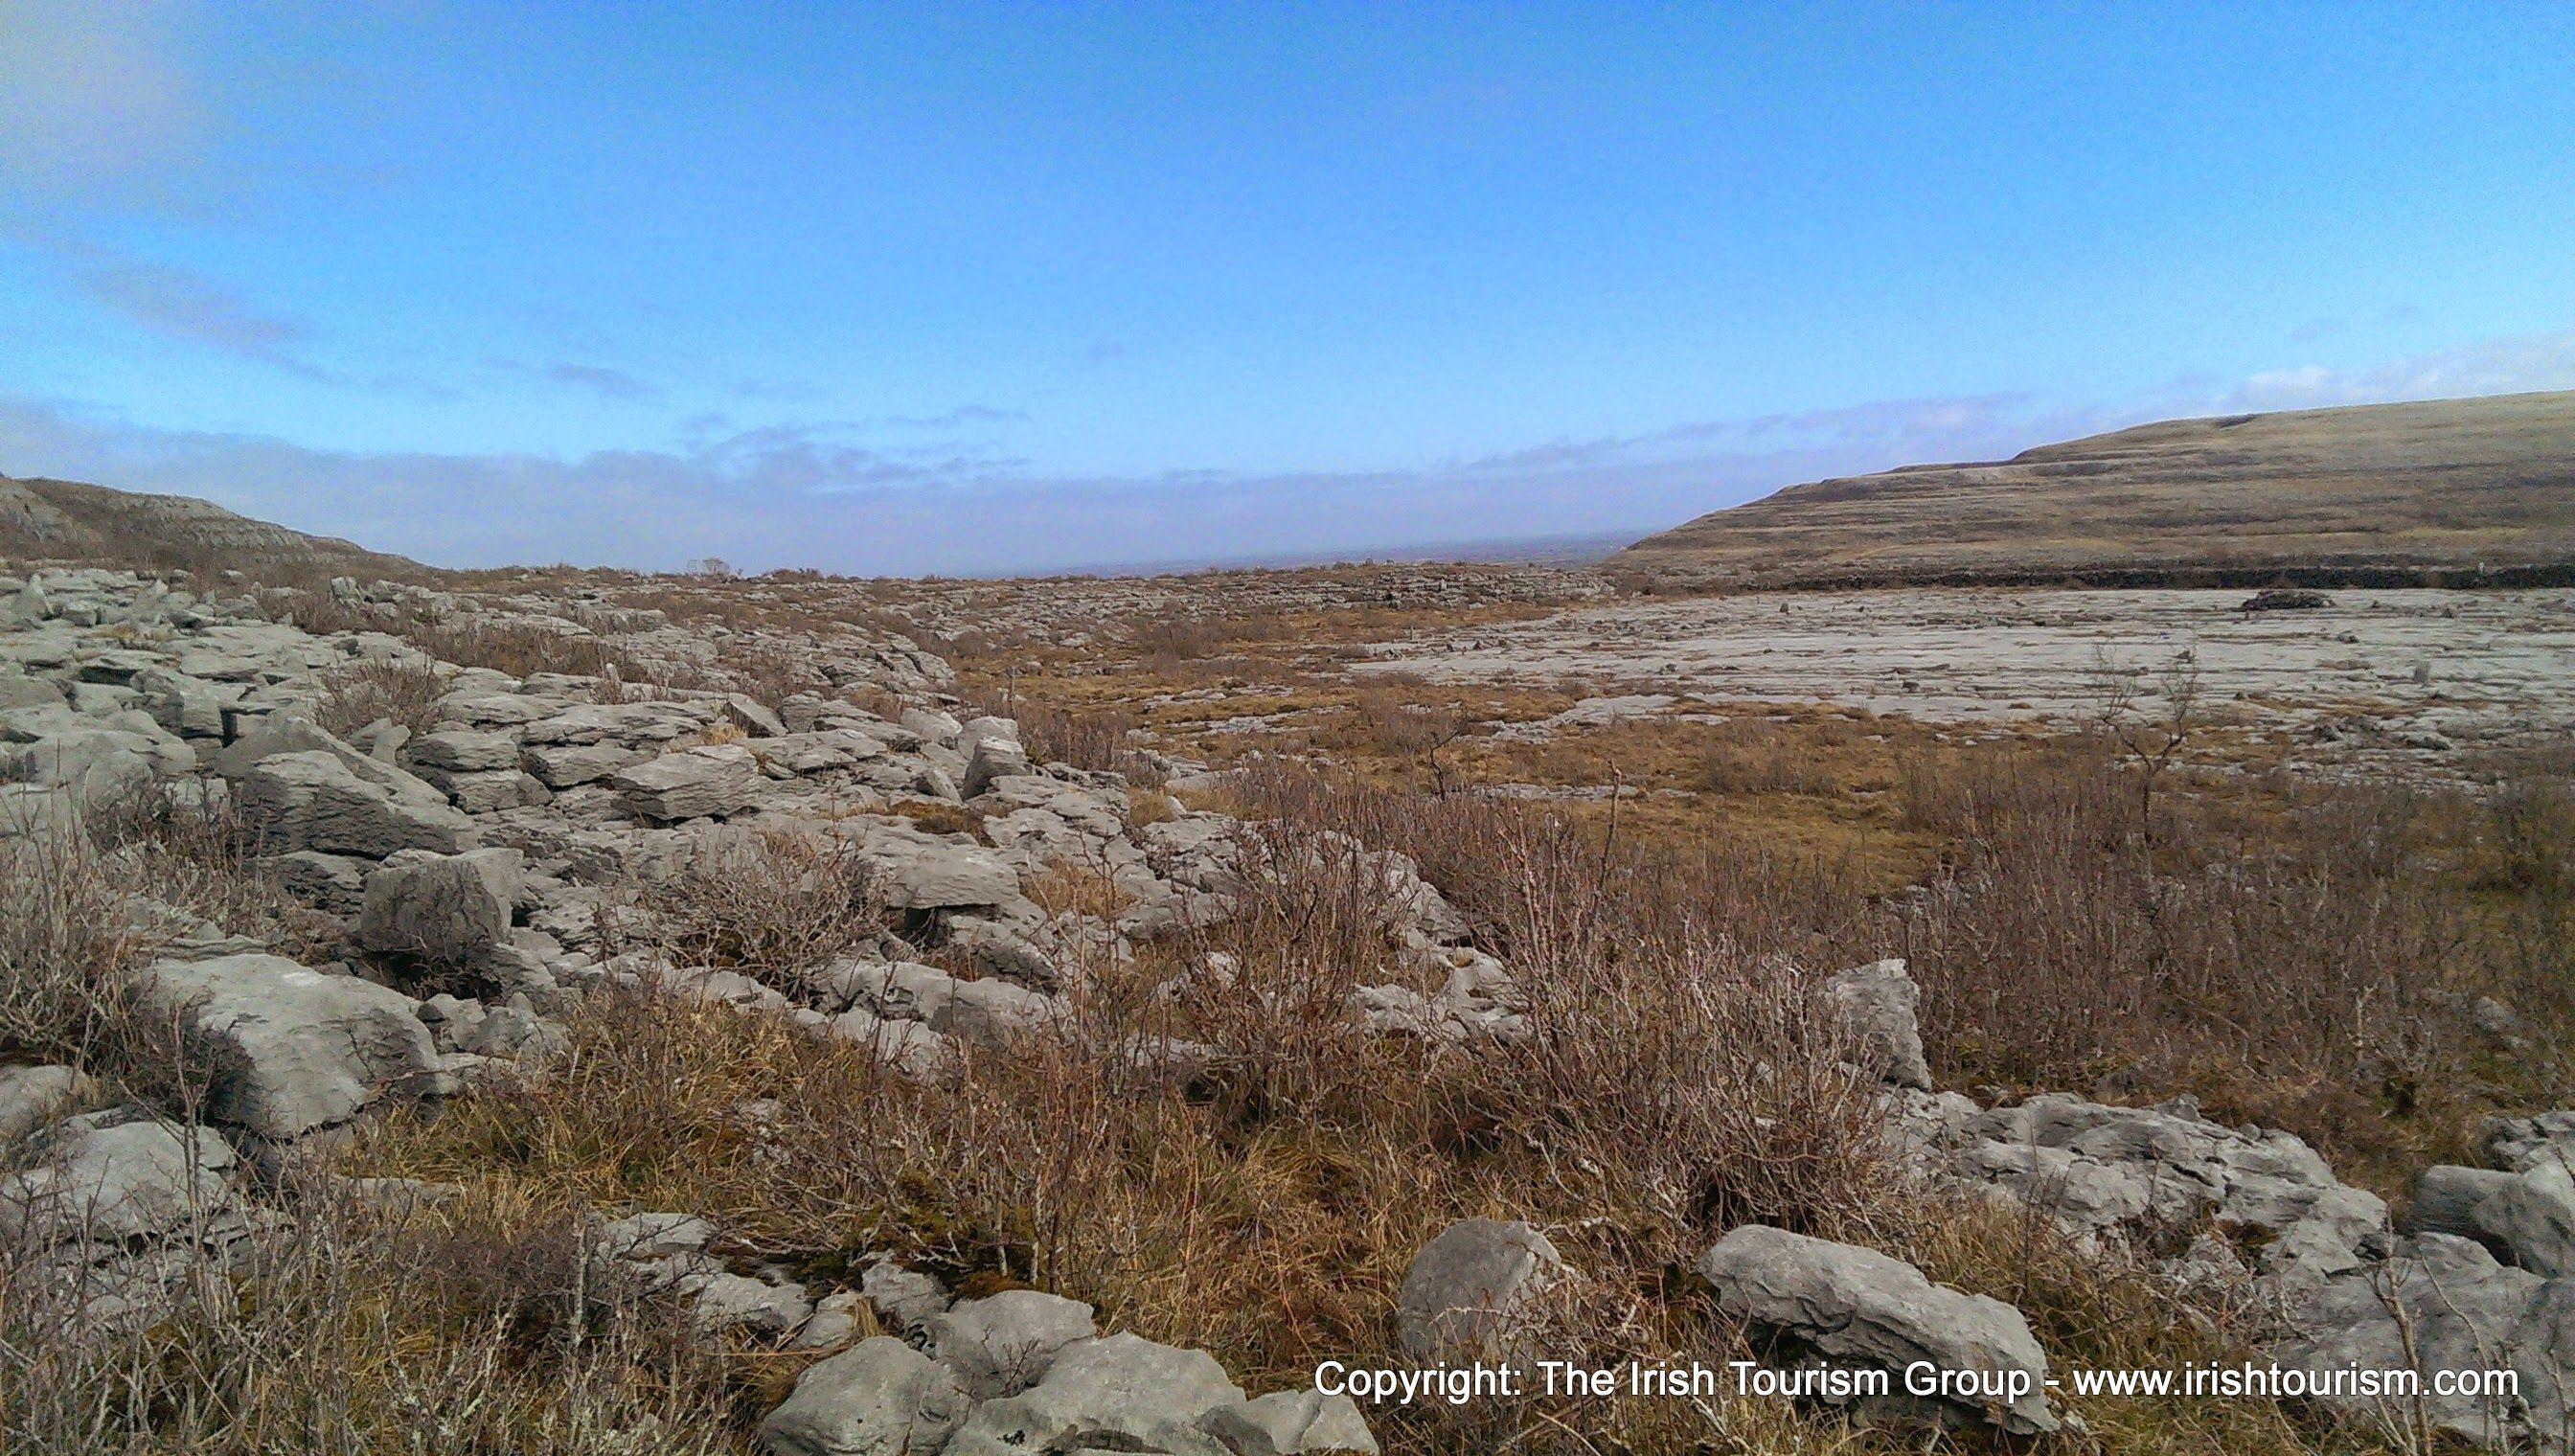 Today I had the pleasure of taking a guided Burren Walk with Tony Kirby of Heart of the Burren Walks and it was certainly an experience I would recommend to anyone! These walks can now be booked through Irish Tourism as part of your package vacation. http://www.irishtourism.com/scenic-attractions-in-ireland/burren/1550 #Burren #Ireland